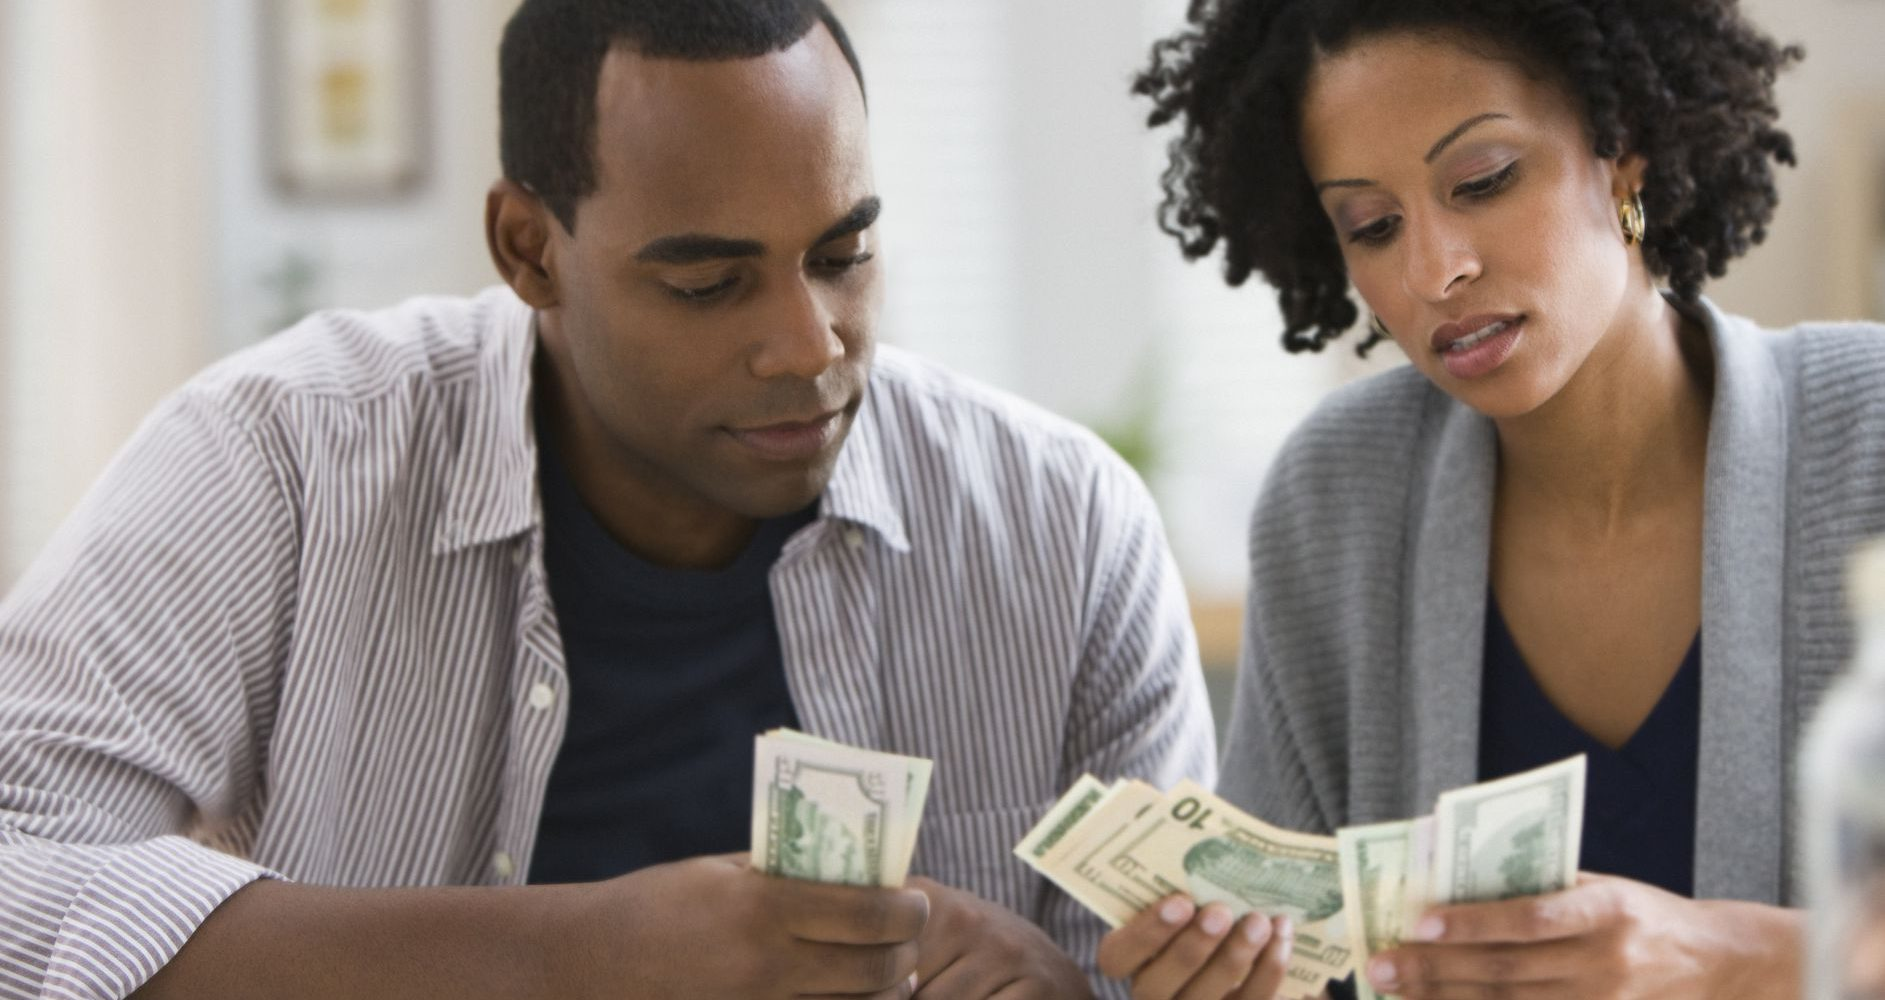 Ladies! Support a man financially at your own risk.